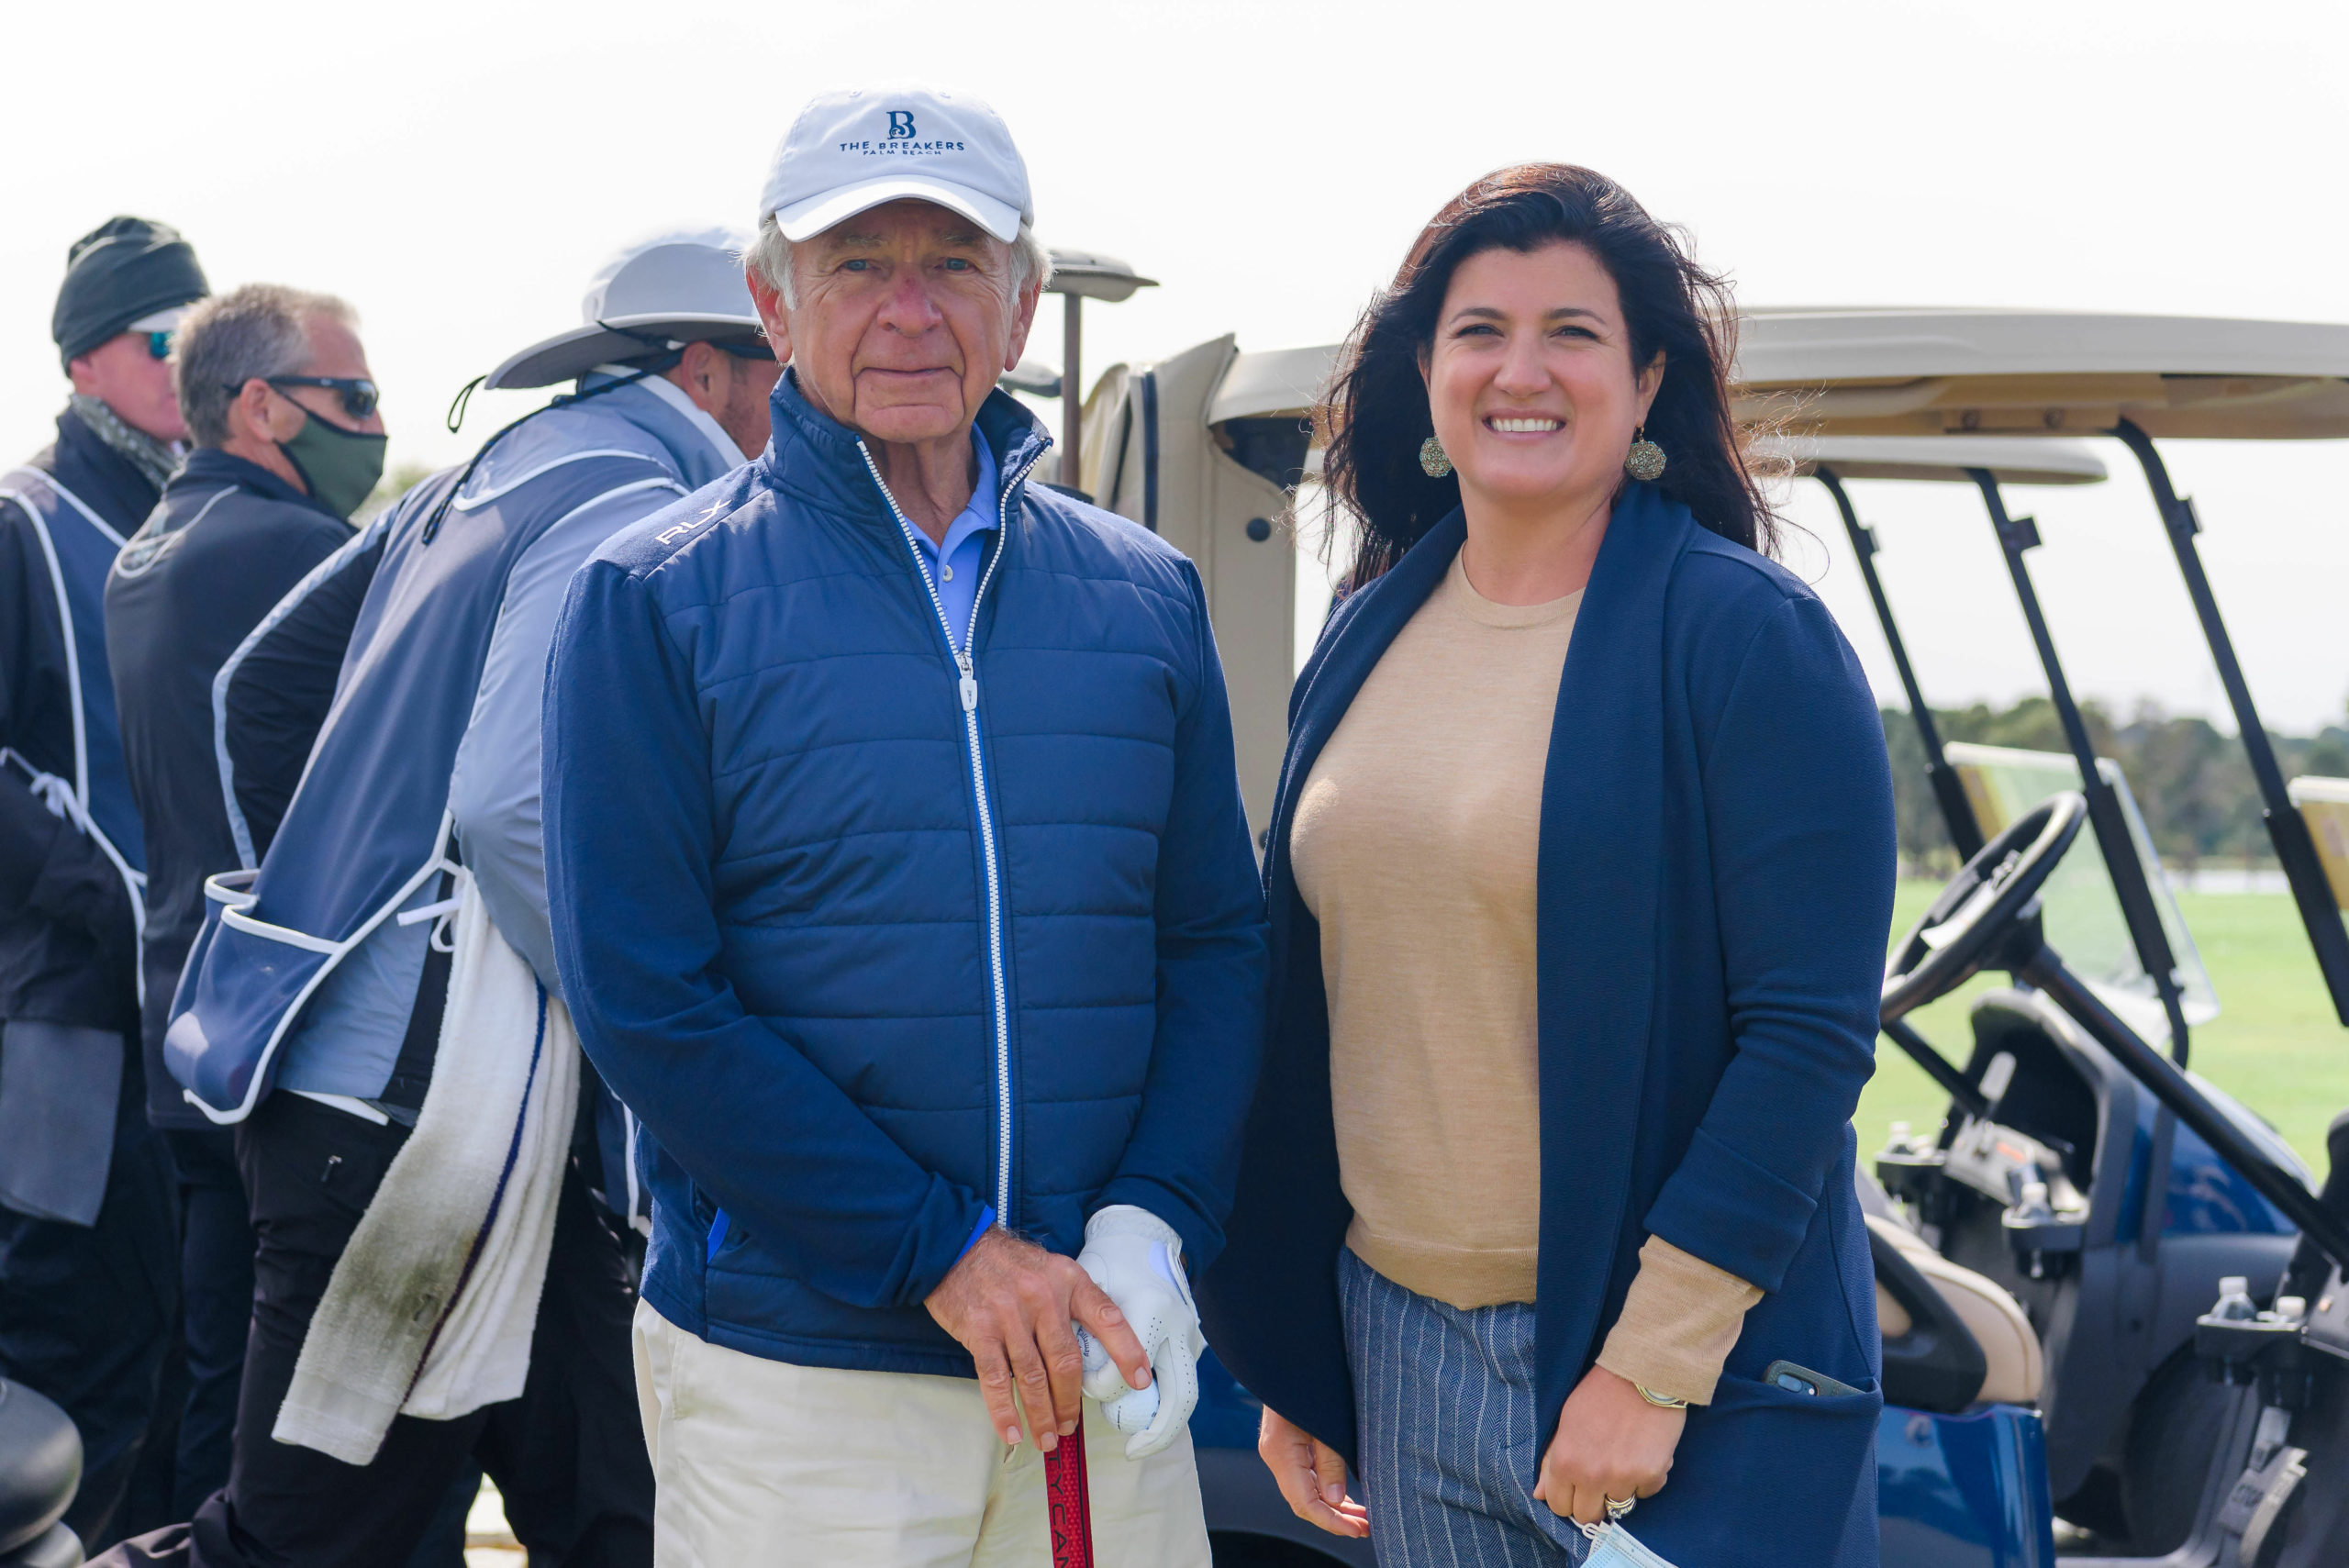 John A. Kanas Sr Presenting Sponsor with Mary Crosby East End Hospice President & CEO at Golf for a Good Cause at the Sebonac Golf Club in Southampton.